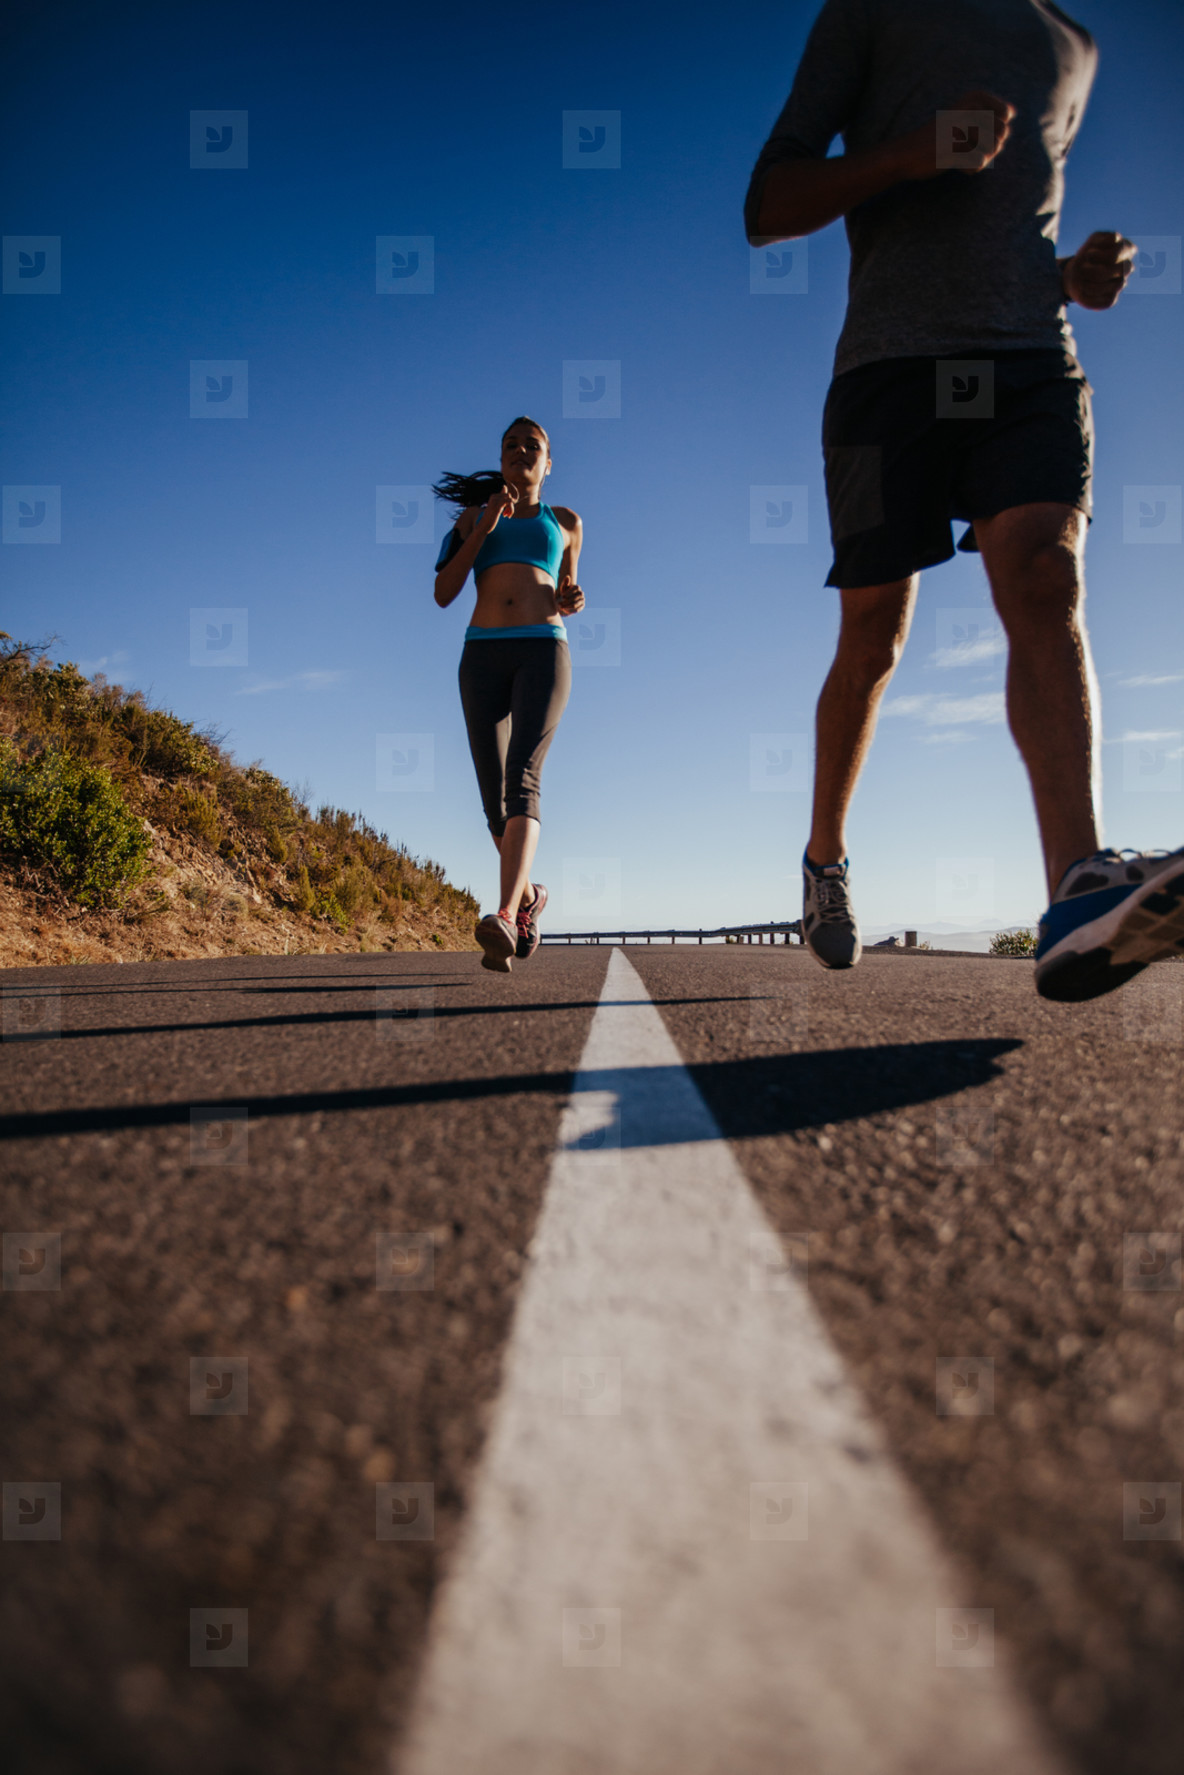 Woman running on road with man in front